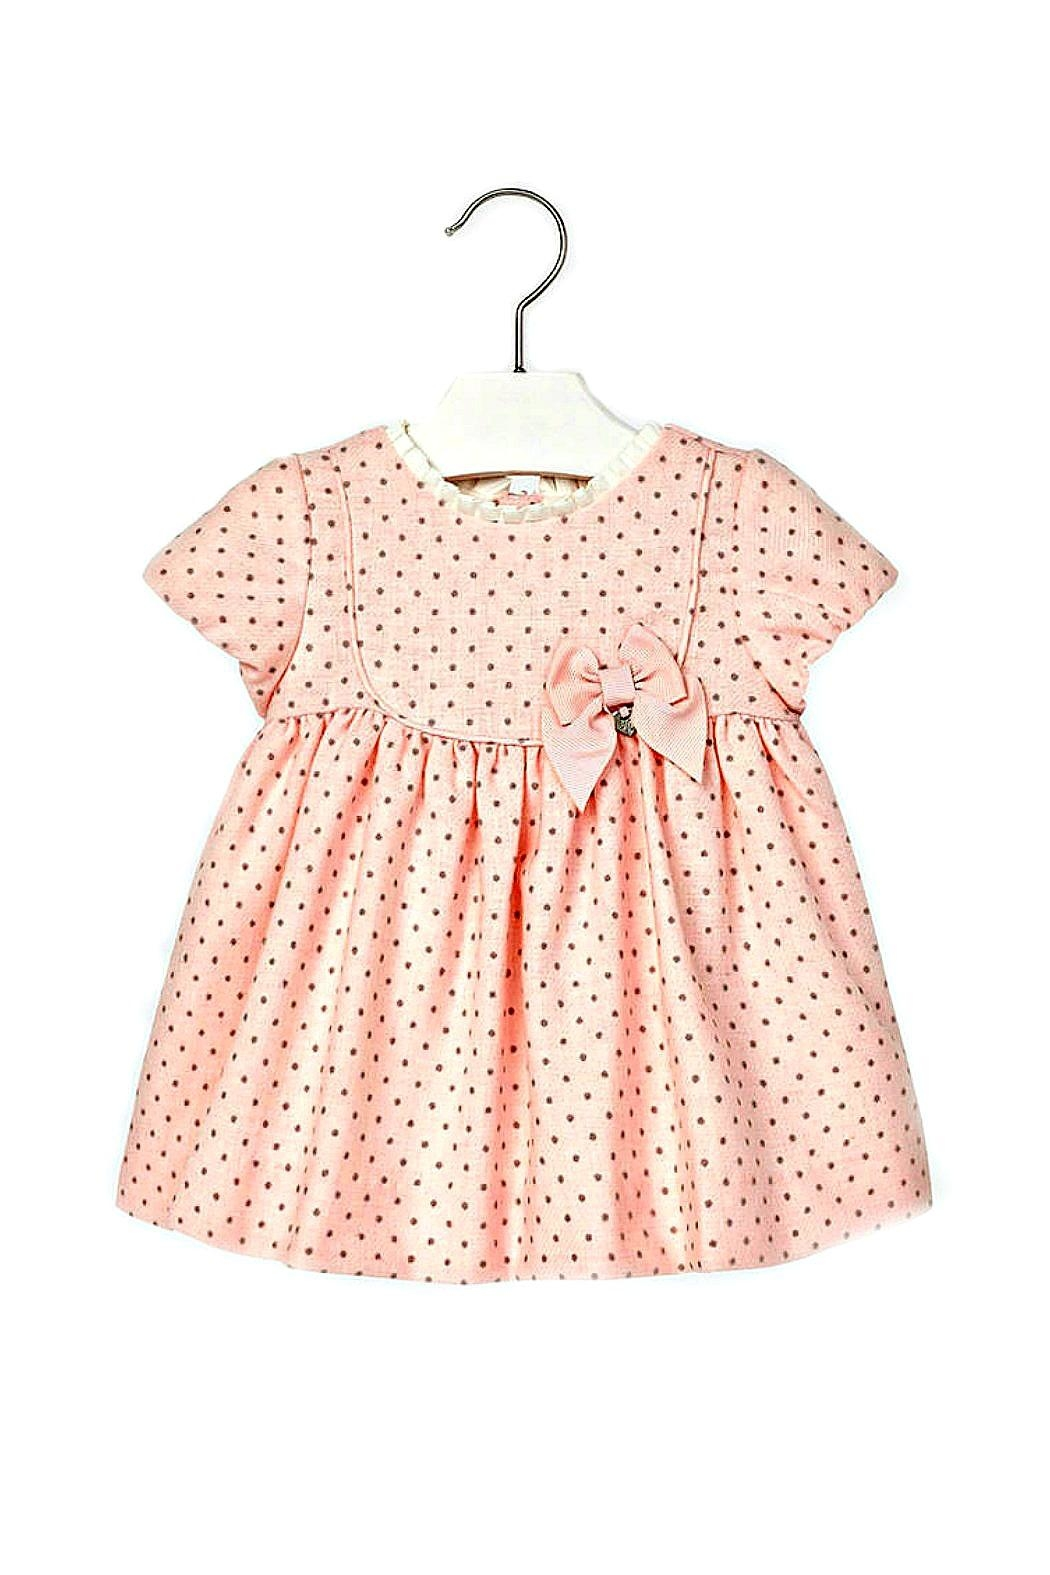 6b0ceecb2 Mayoral Baby-Girl Pink-Wool-Blend Dress from South Carolina by The ...